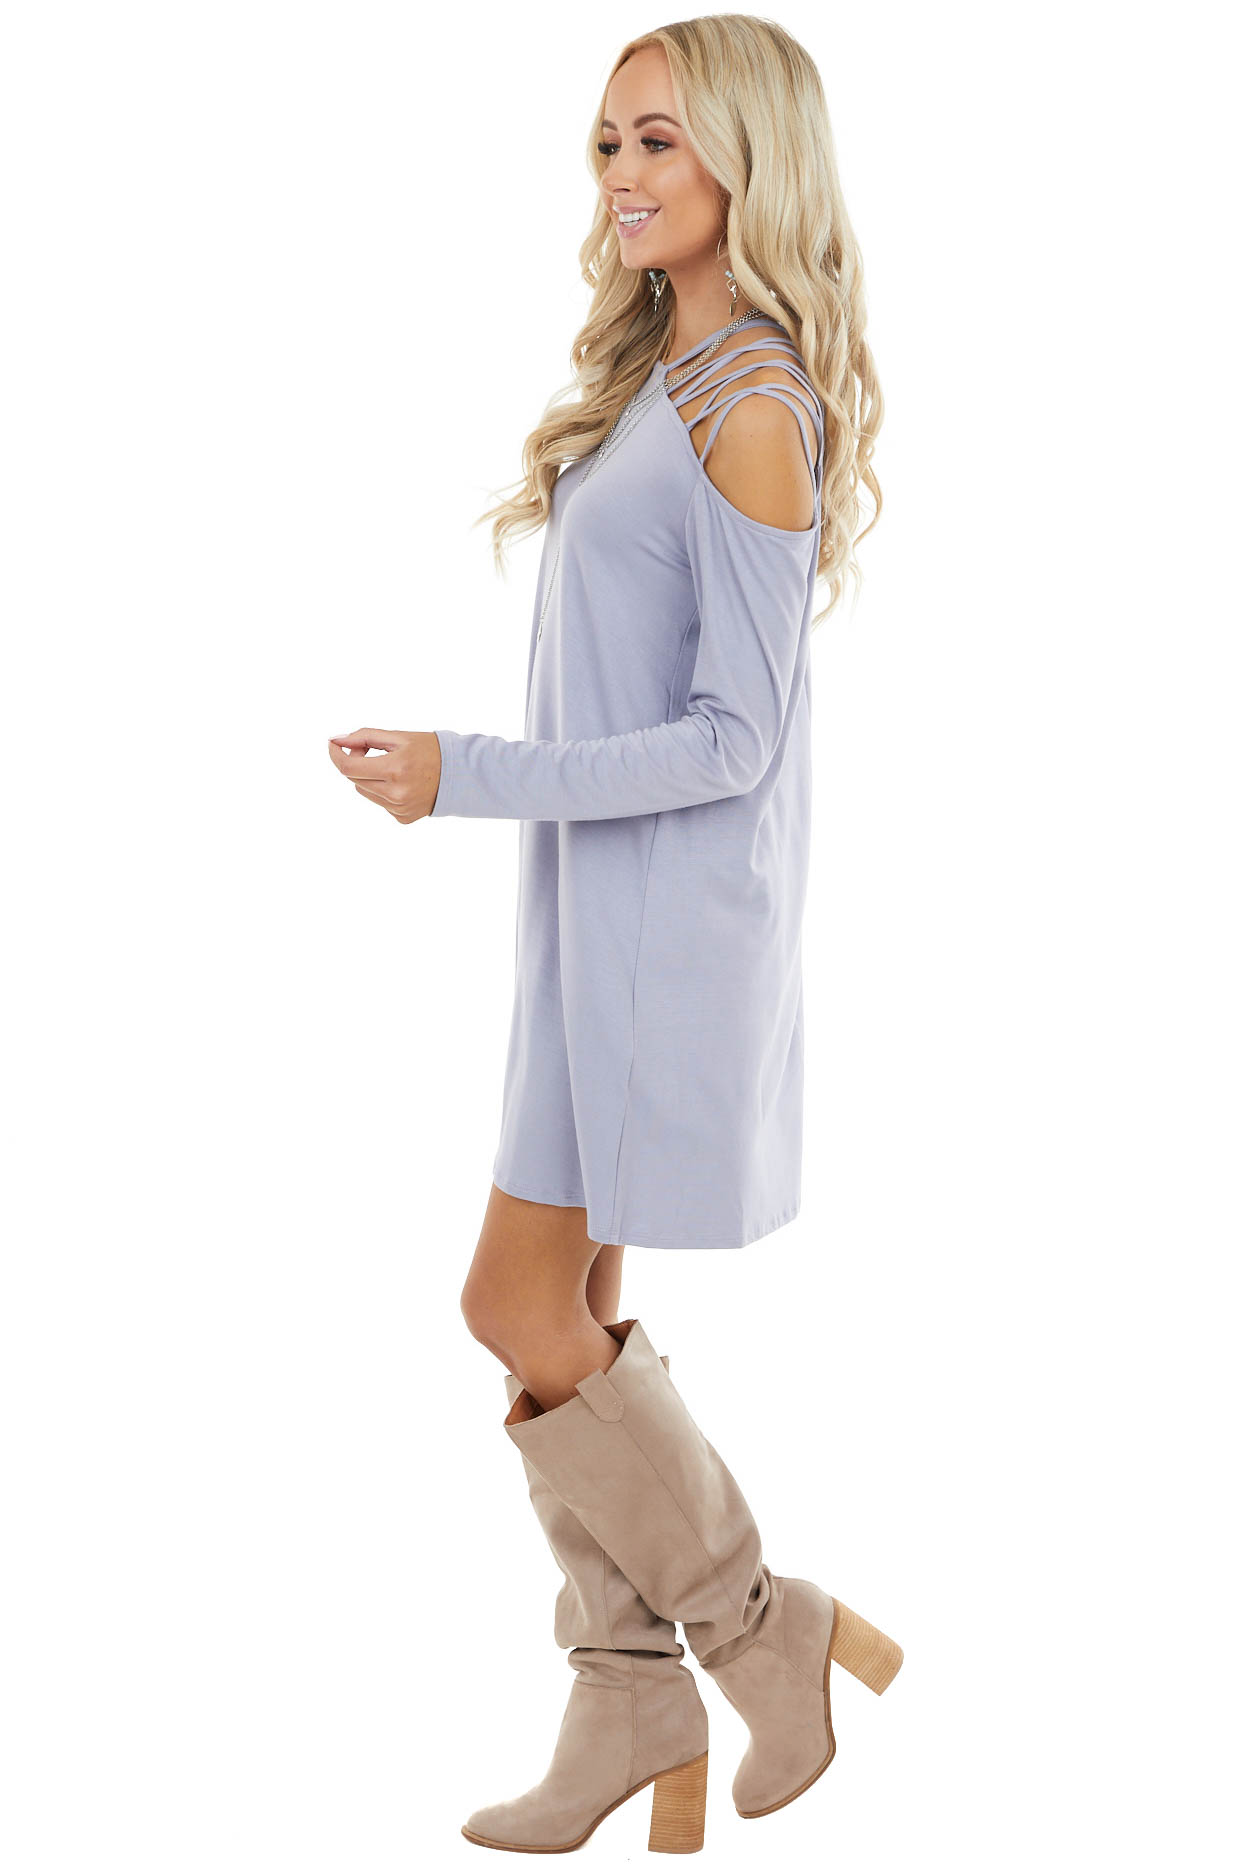 Periwinkle Cold Shoulder Mini Dress with Criss Cross Straps